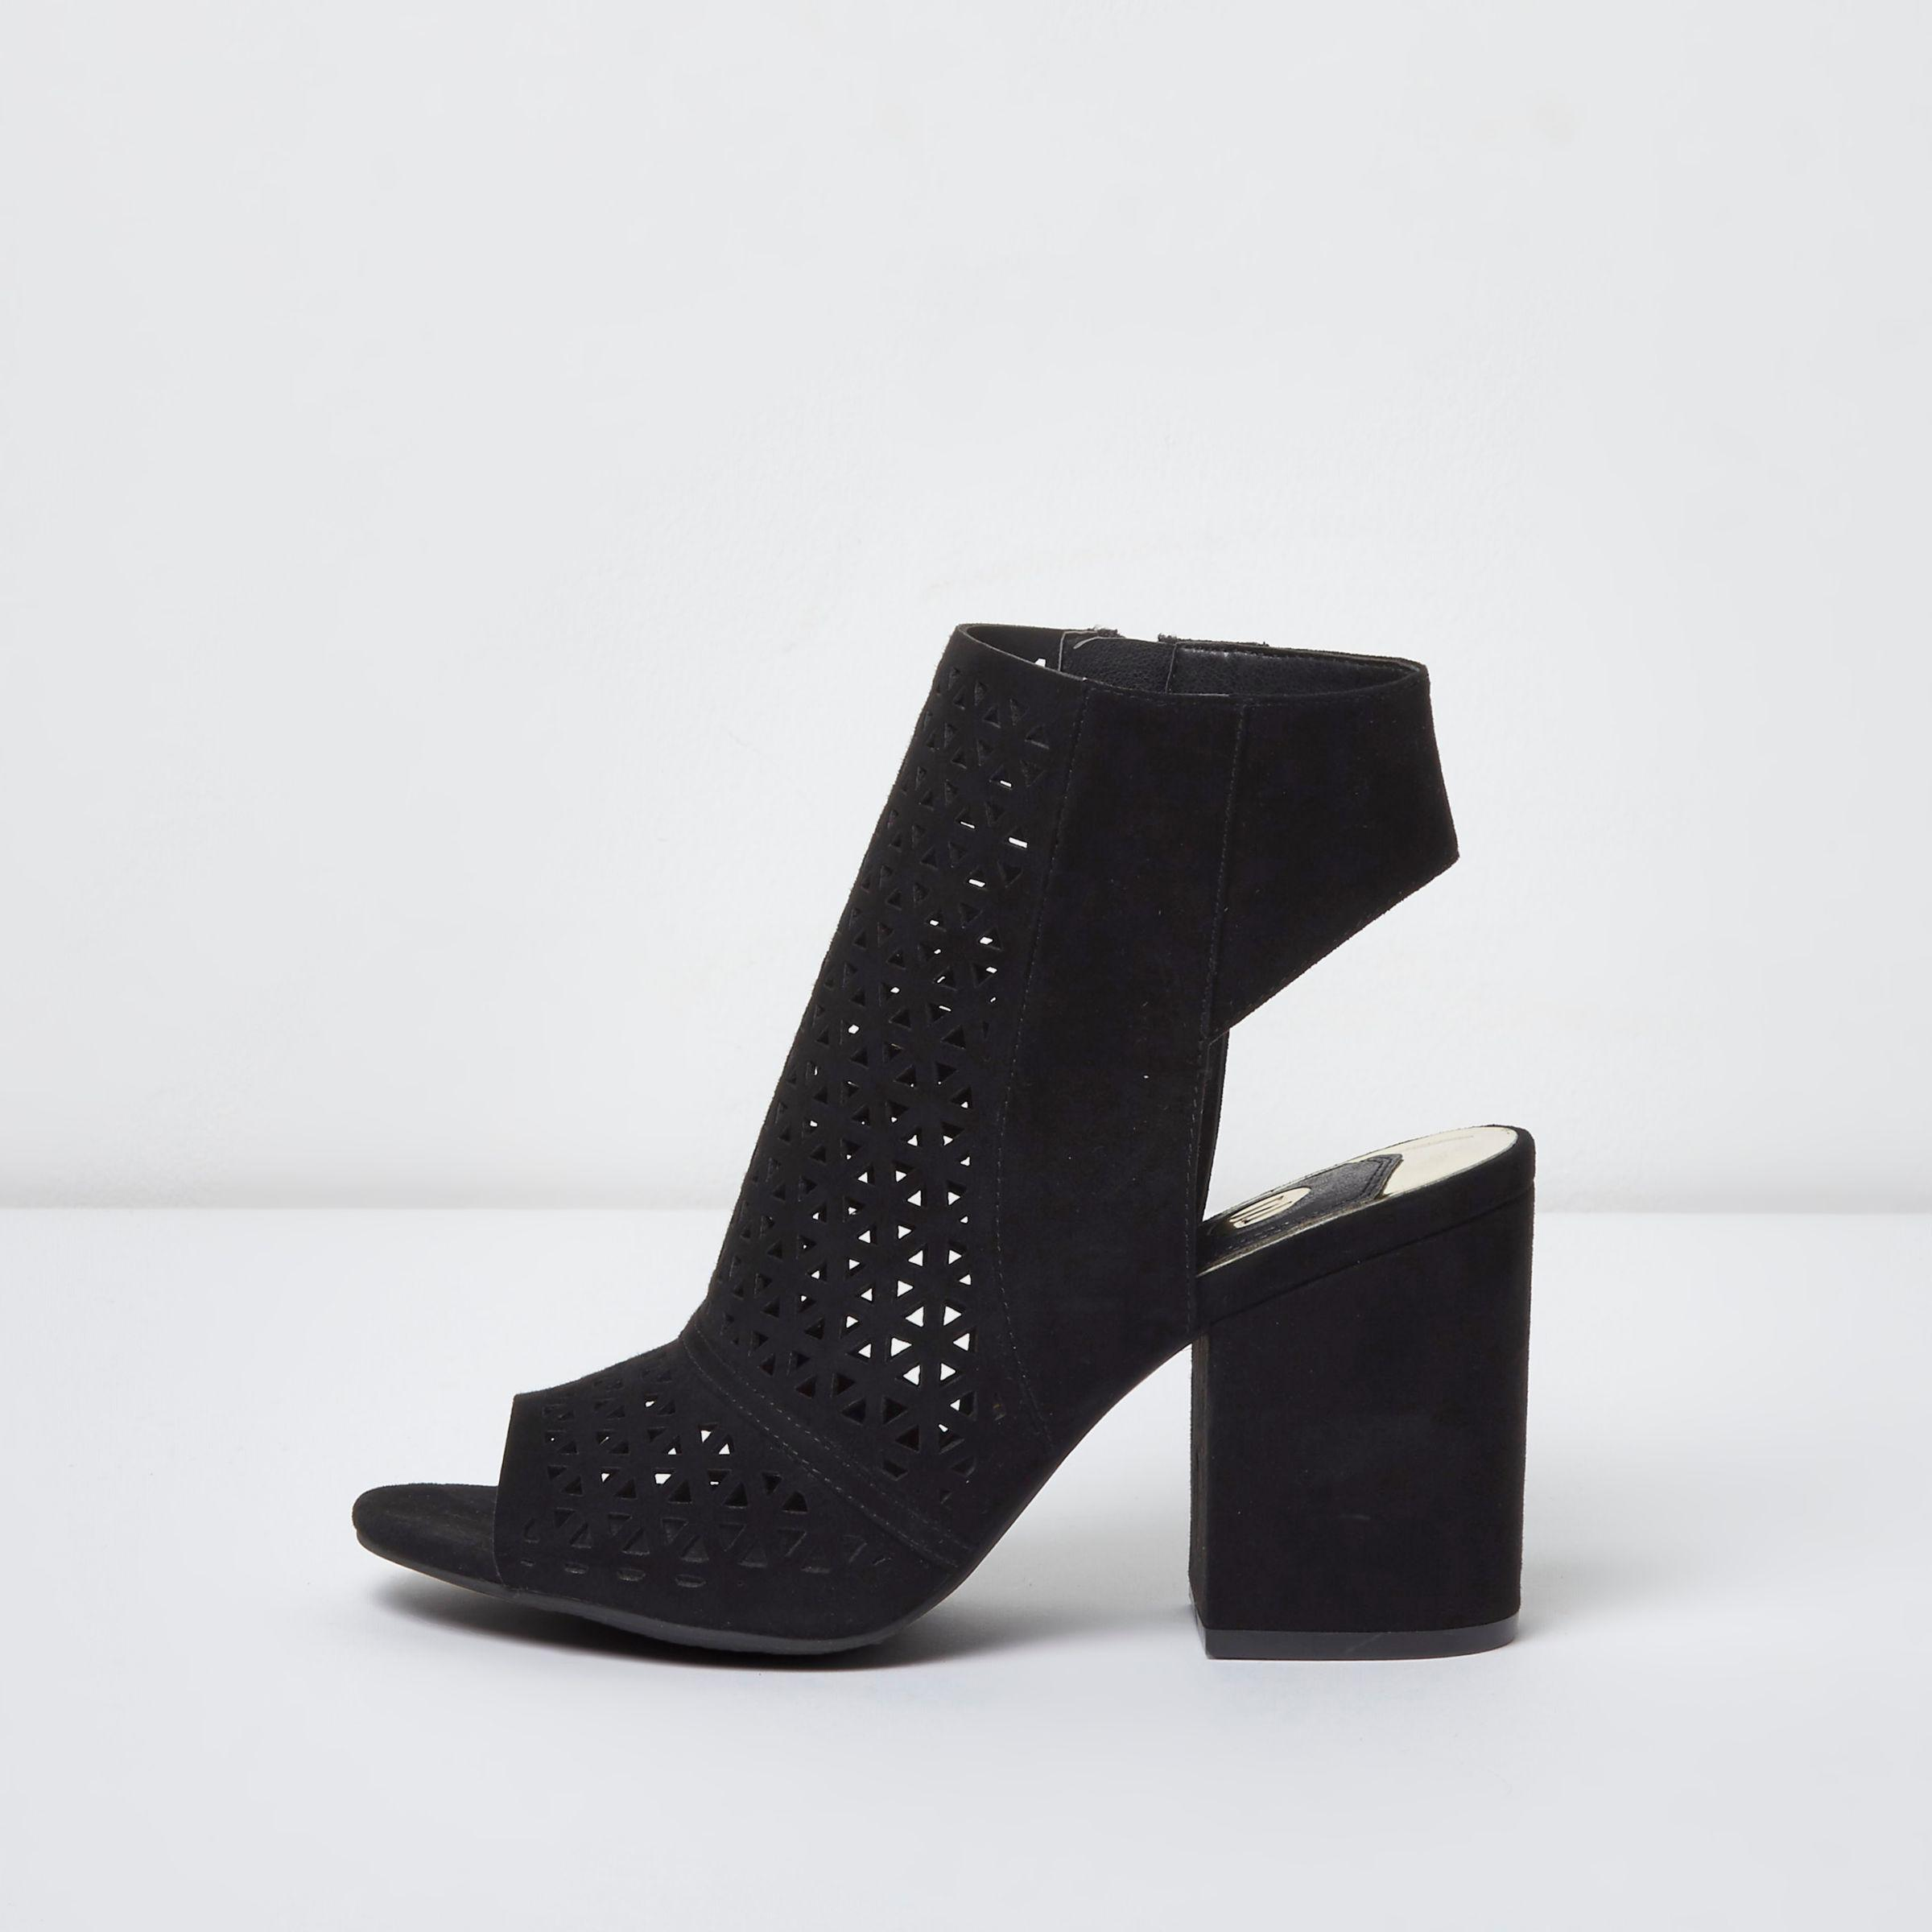 6bab9a556527 River Island Black Laser Cut Peep Toe Shoe Boots in Black - Lyst